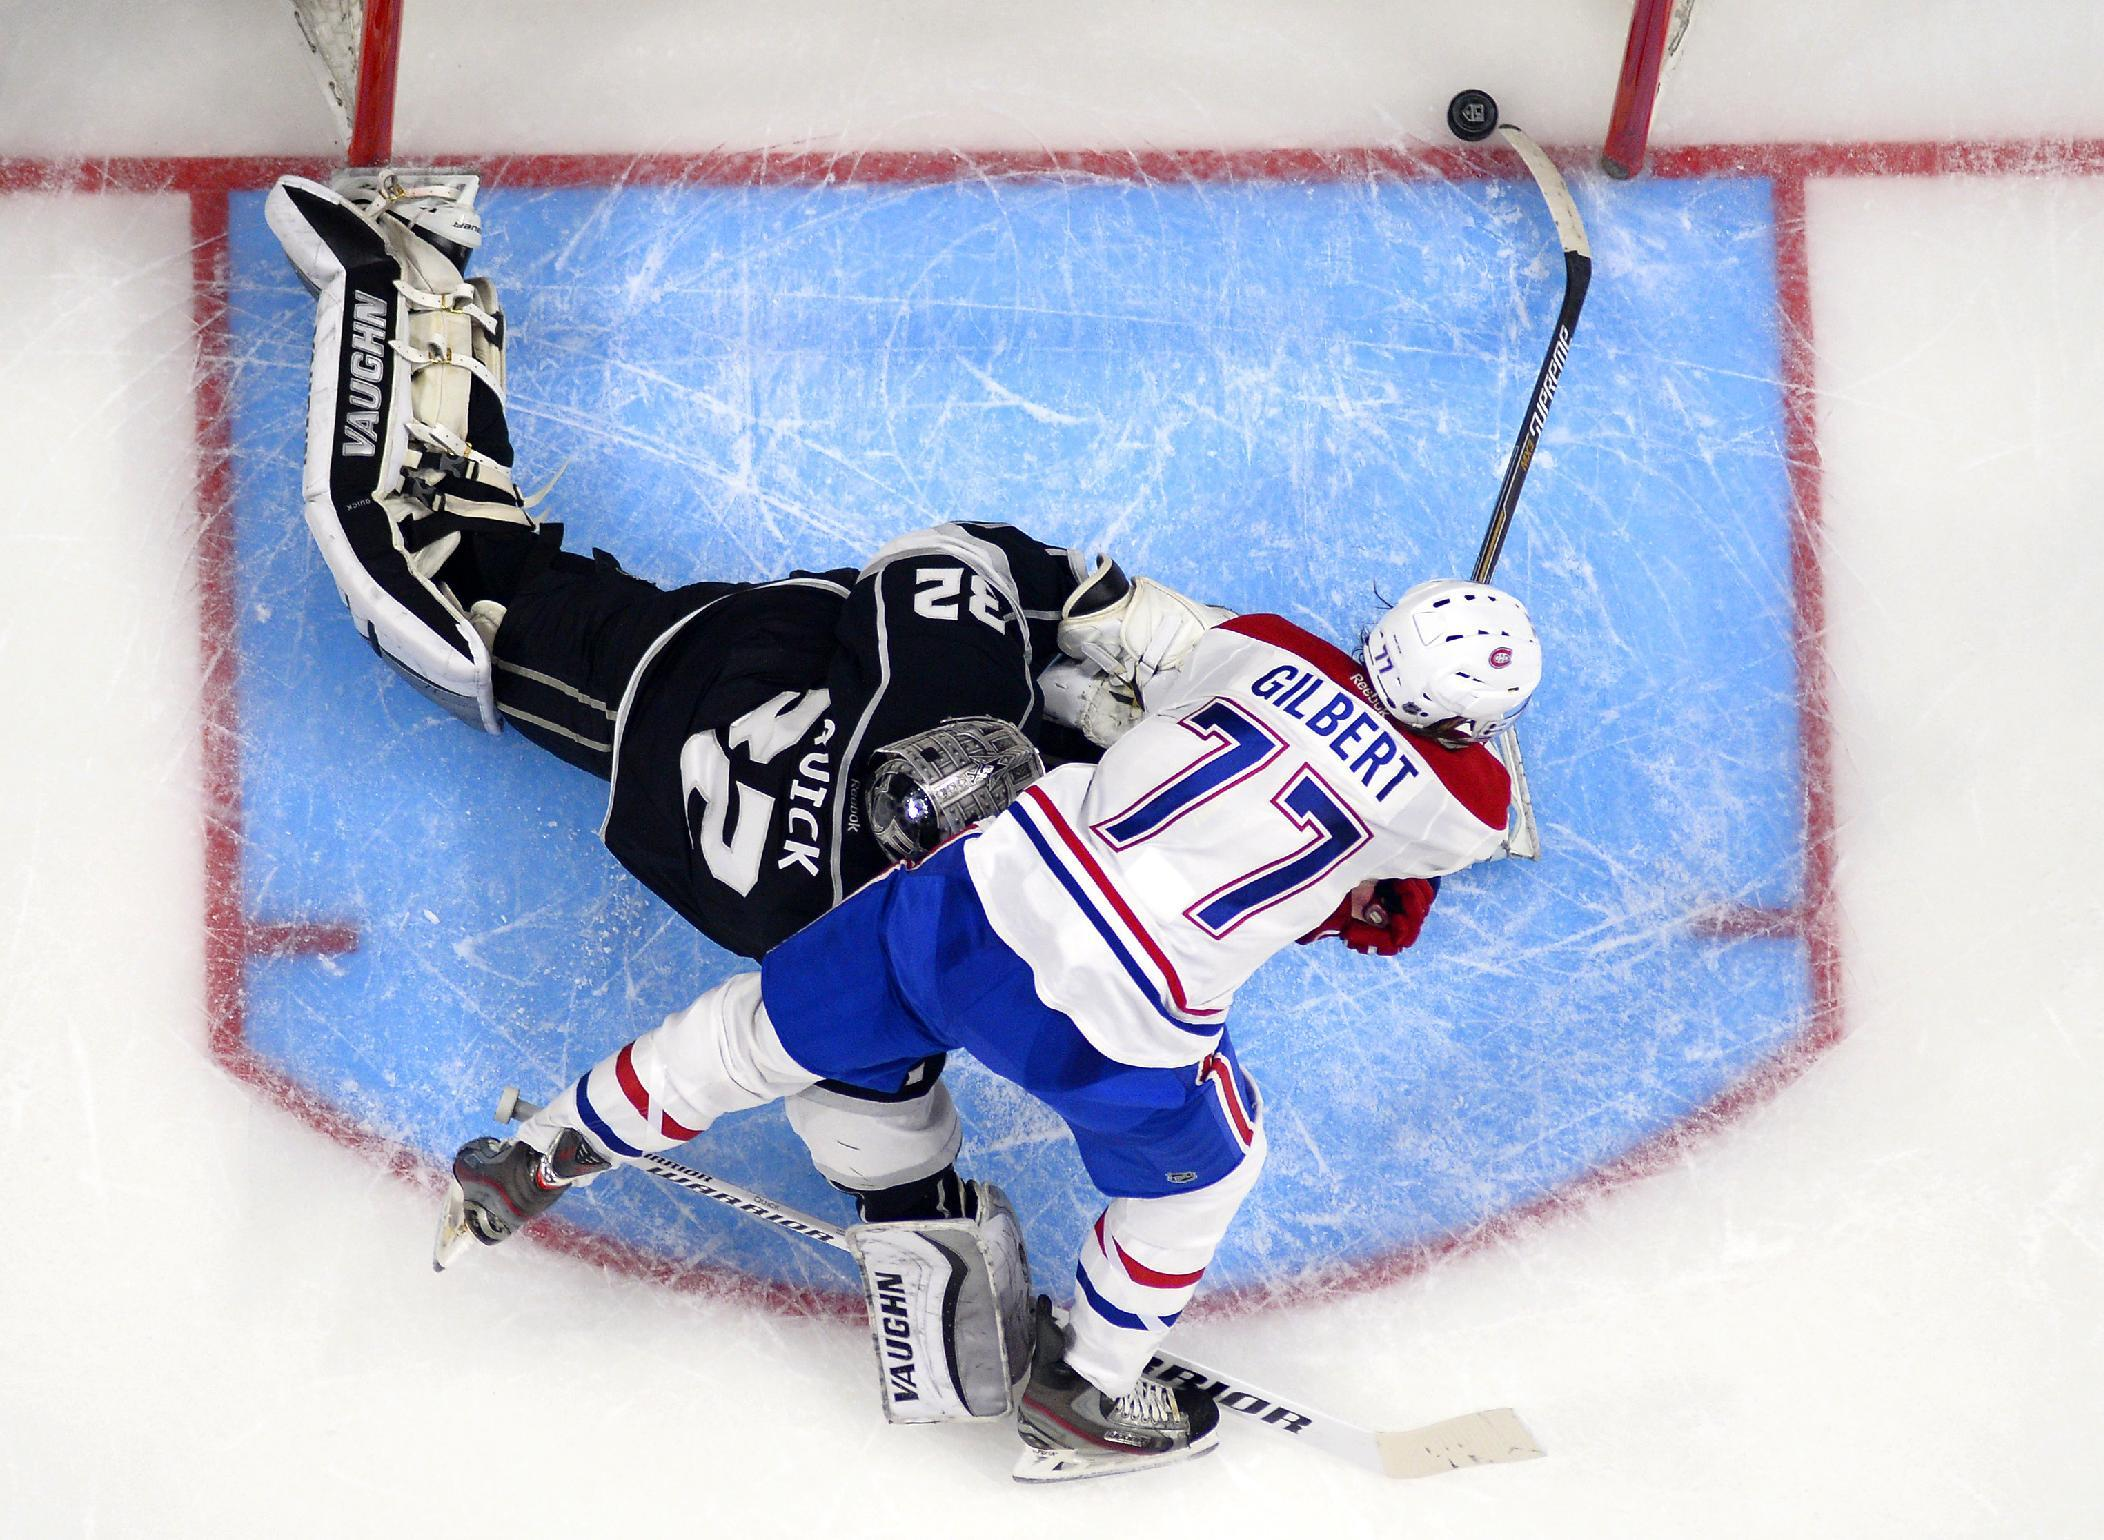 Gaborik leads LA Kings' rally past Montreal, 4-3 in shootout